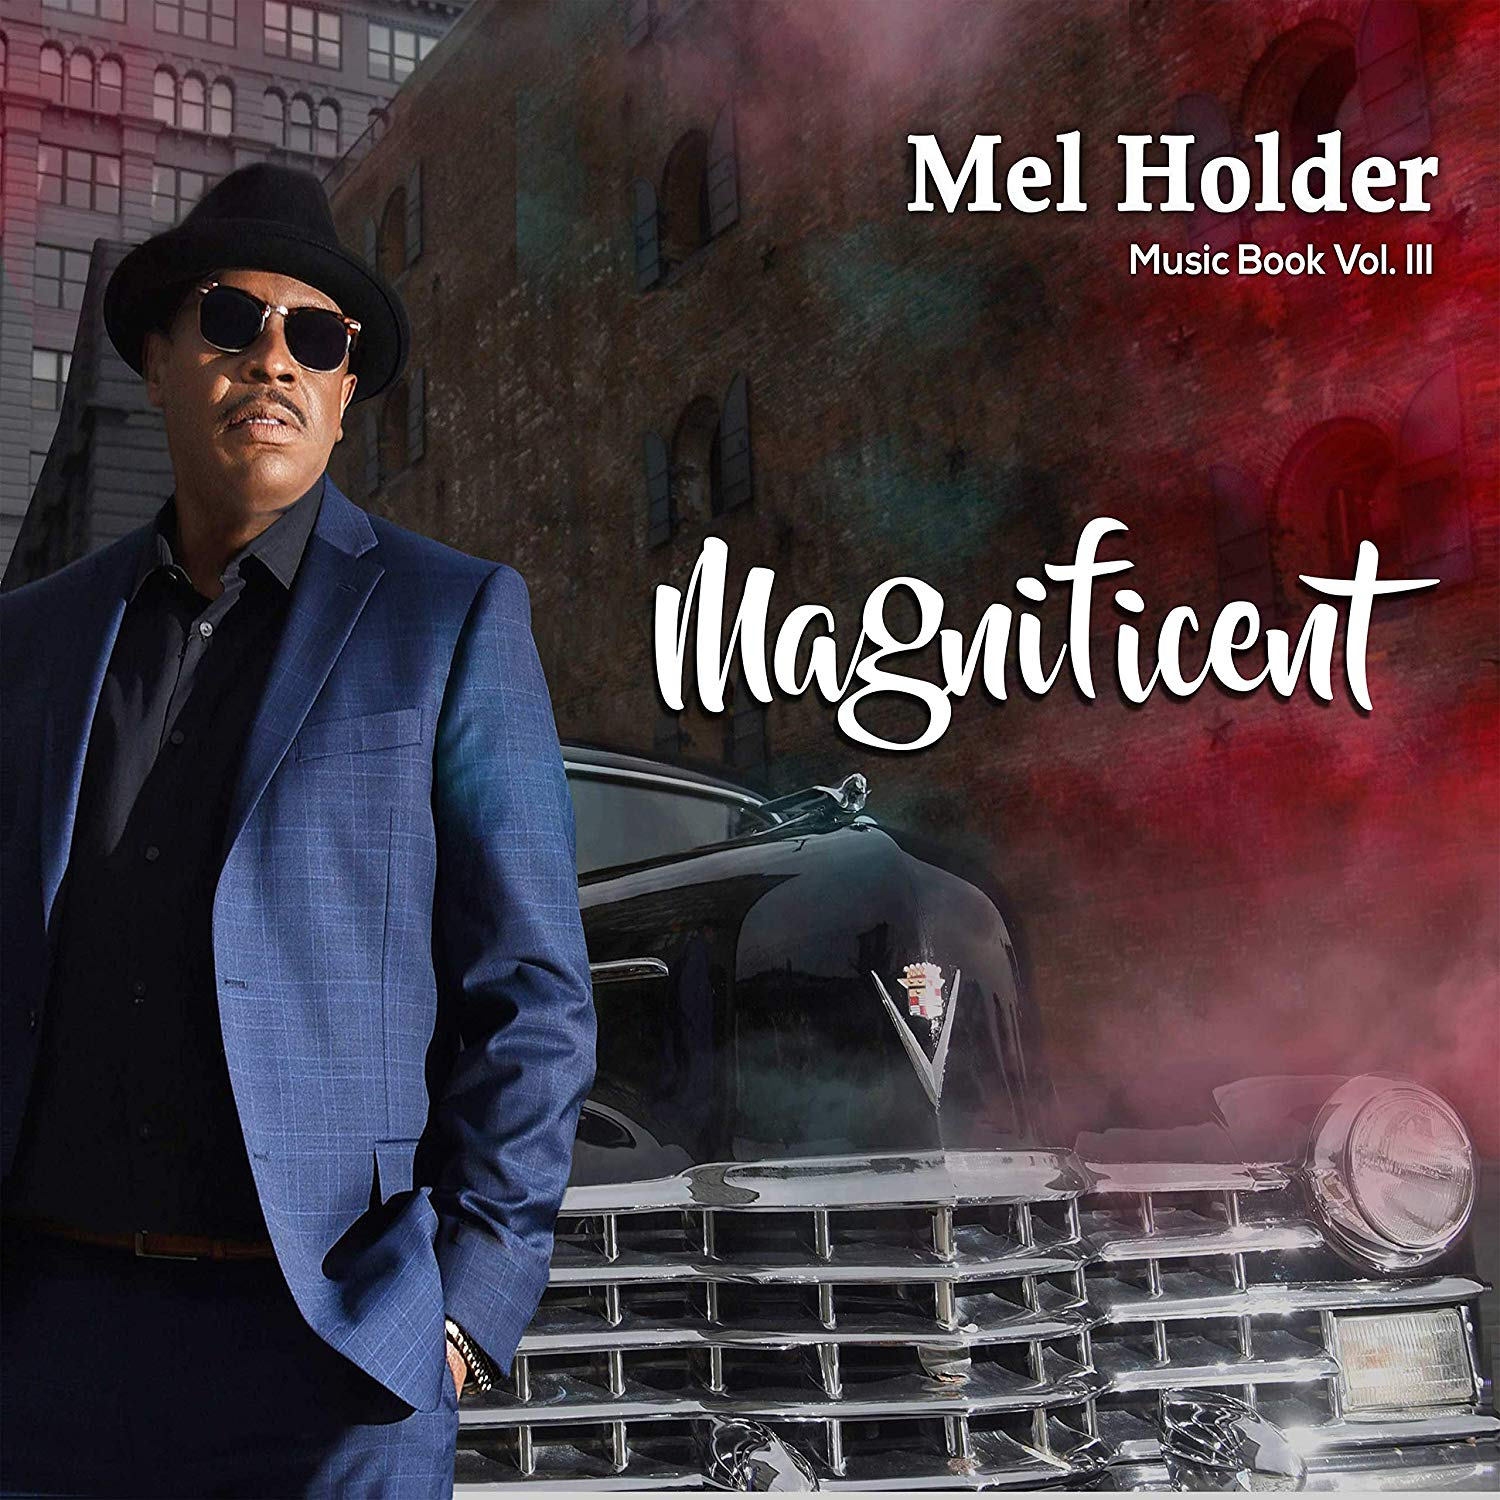 MEL HOLDER - Music Book Volume III - Magnificent cover